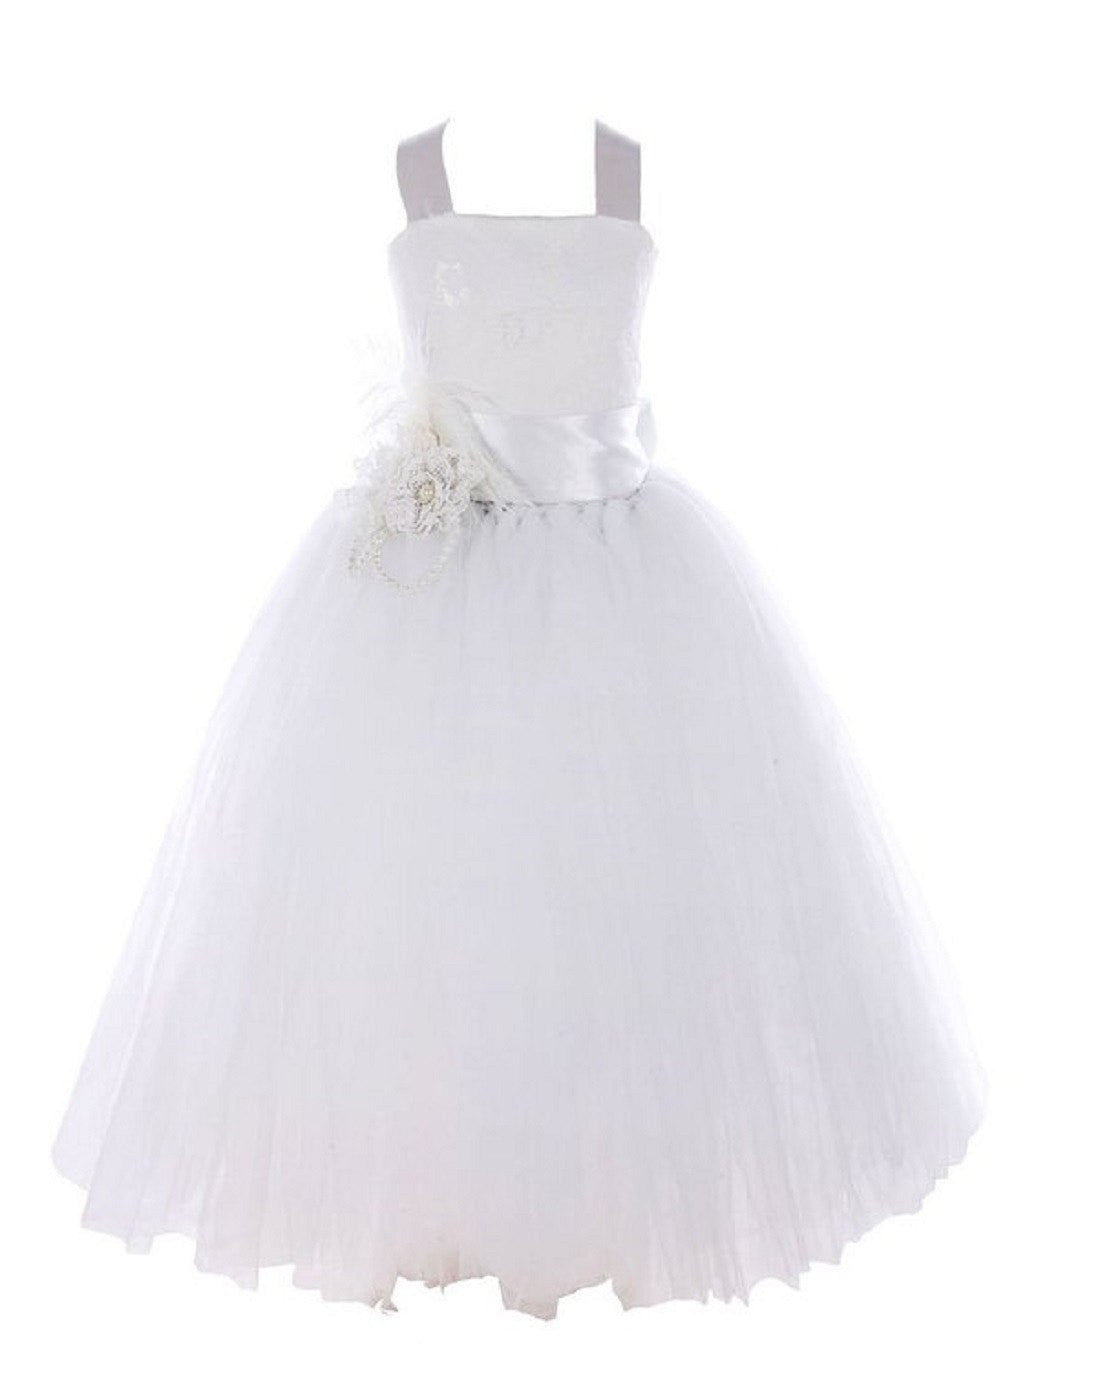 Fairy Tutu Flower Girl Dress White Efavormart